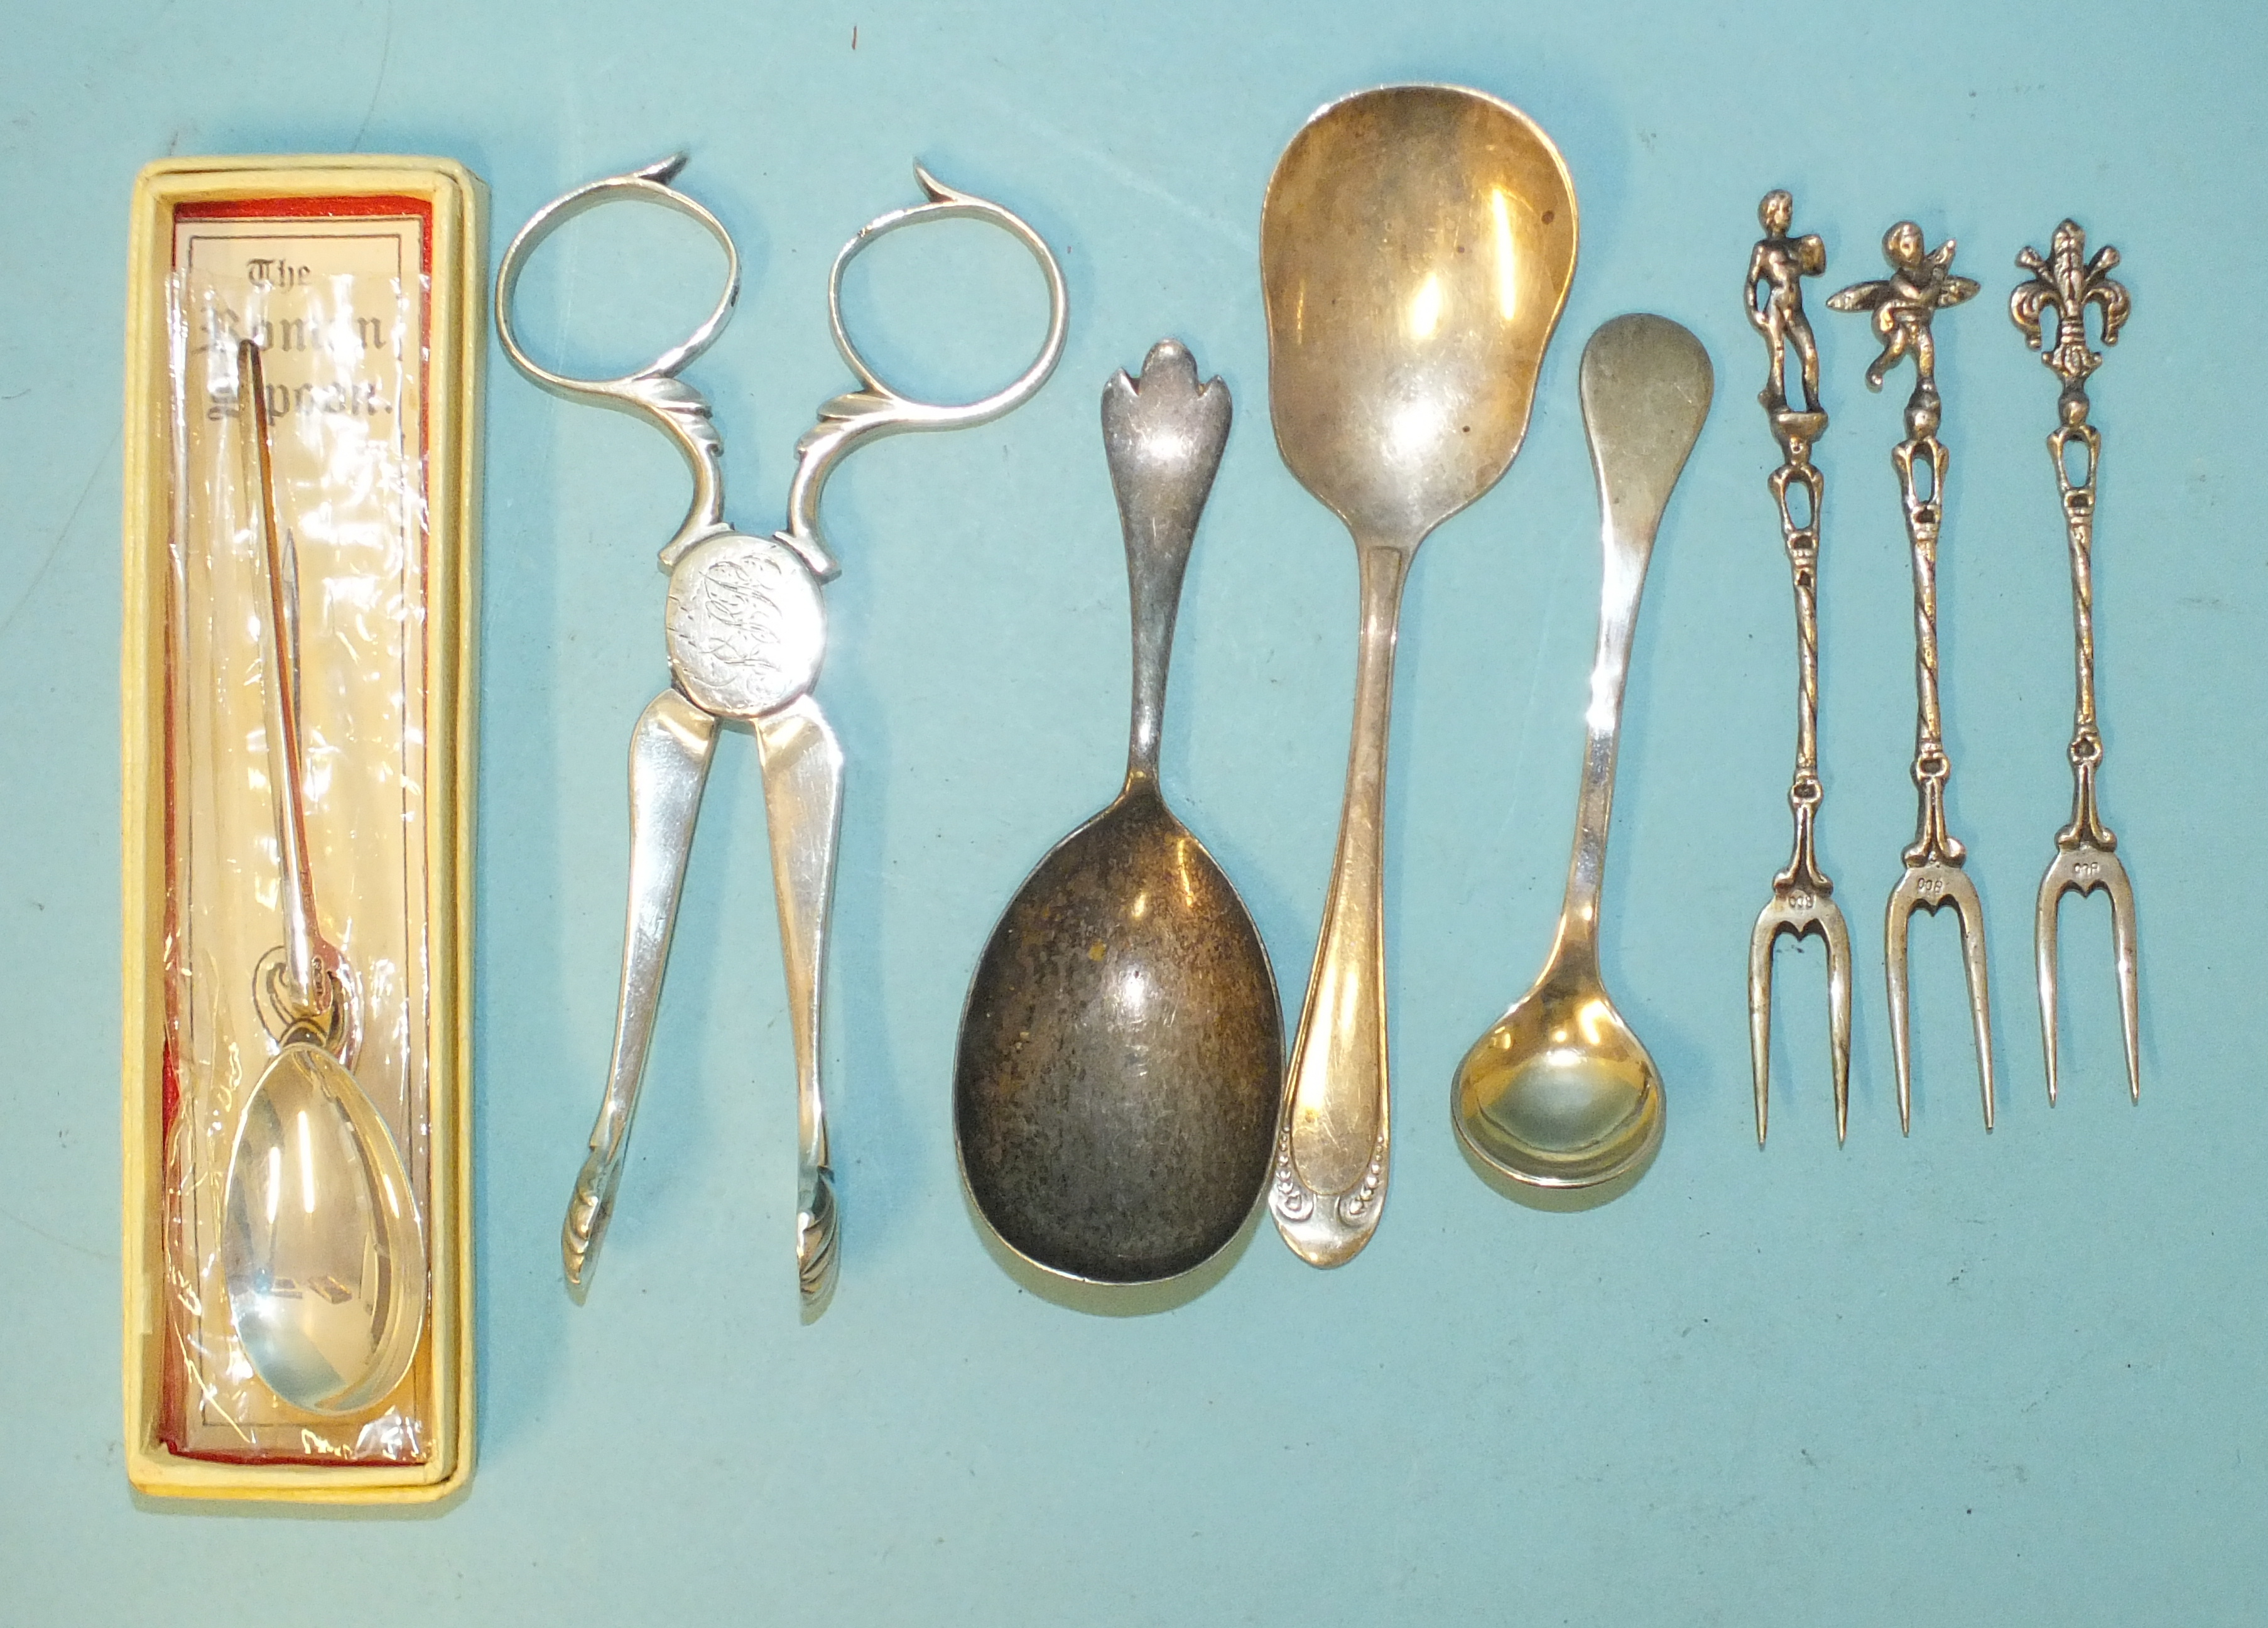 A pair of 18th century silver sugar nips with engraved initials, a reproduction Roman spoon,